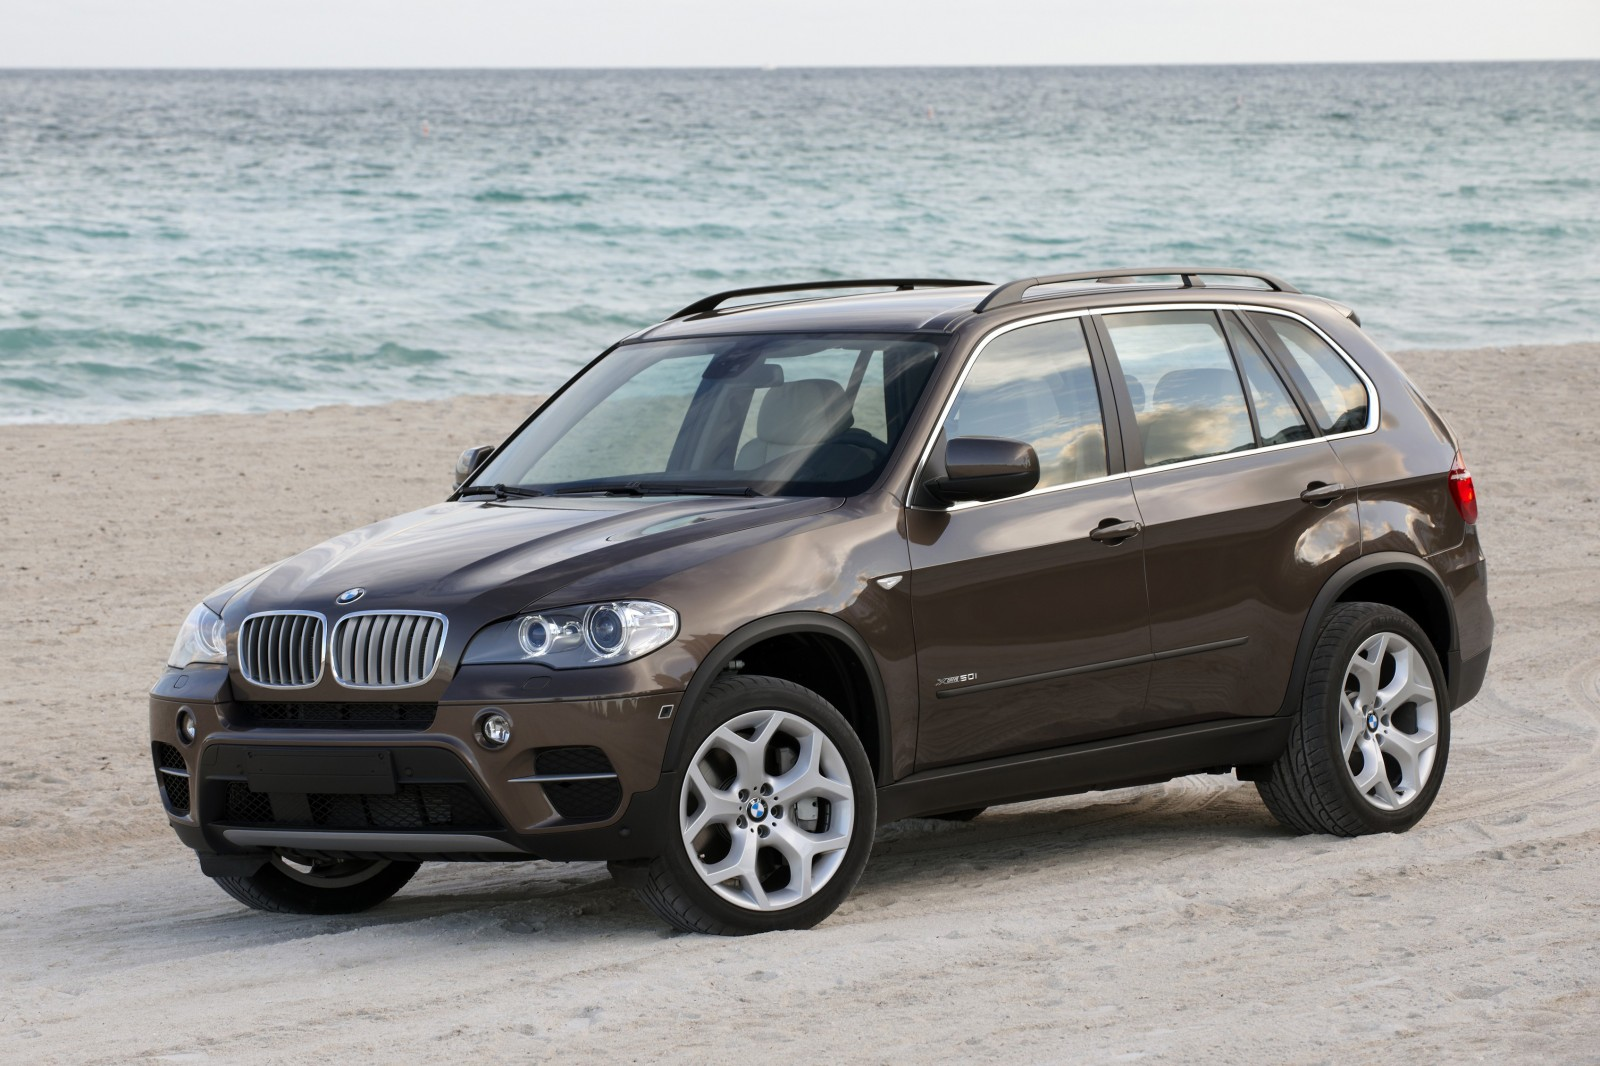 bmw x5 2013 review amazing pictures and images look at. Black Bedroom Furniture Sets. Home Design Ideas